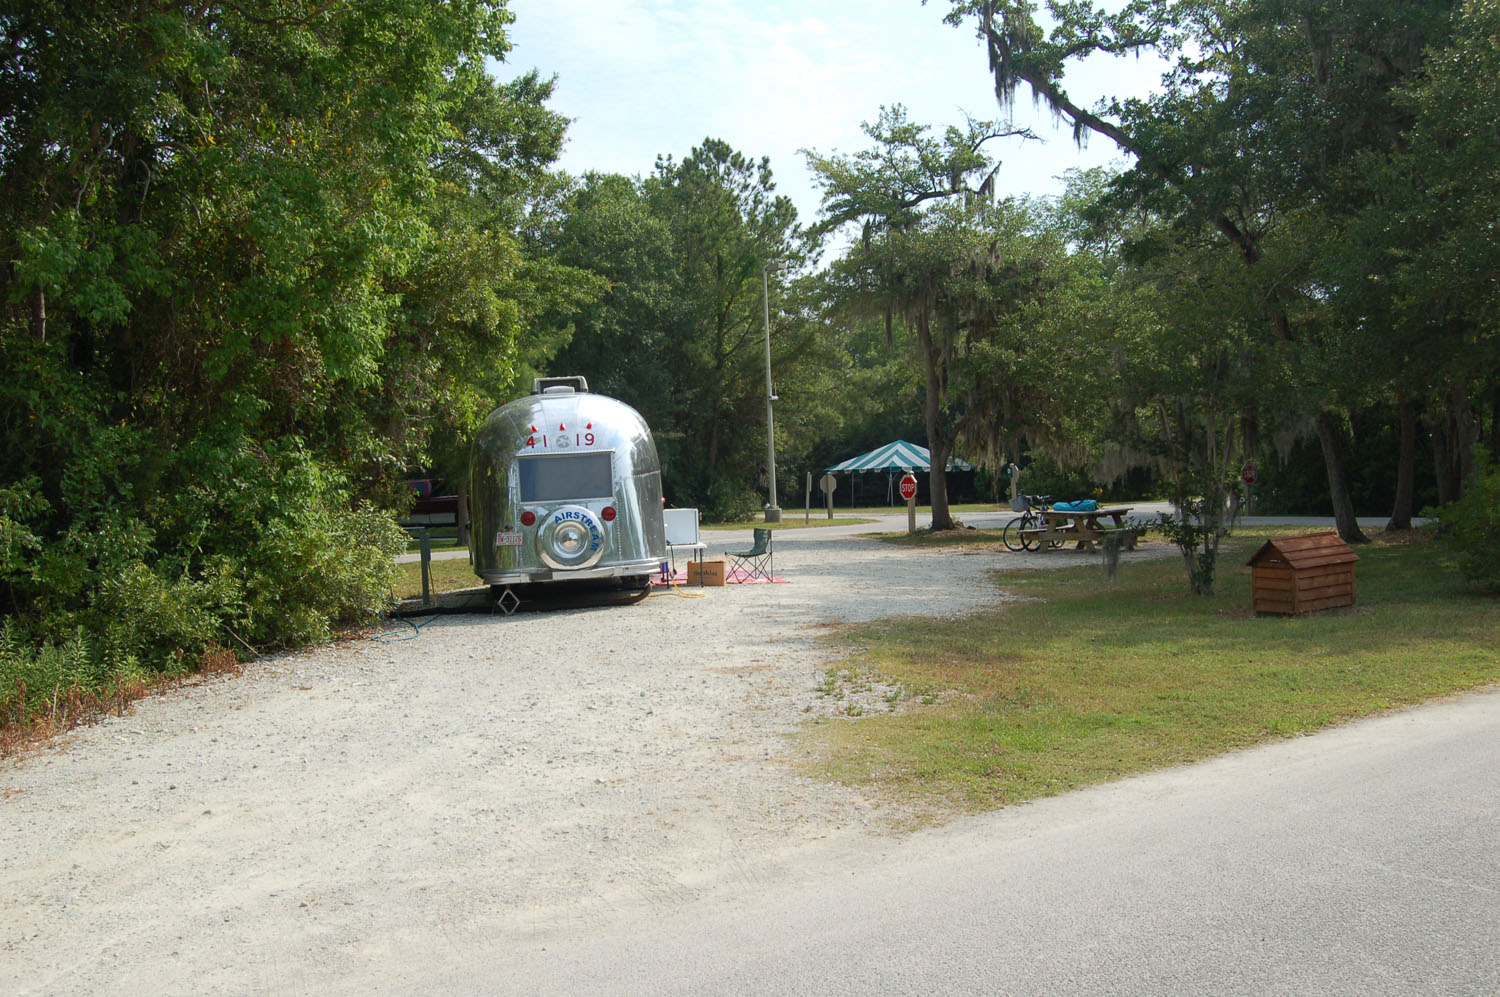 Image of campsite #43 at the Campground at James Island County Park